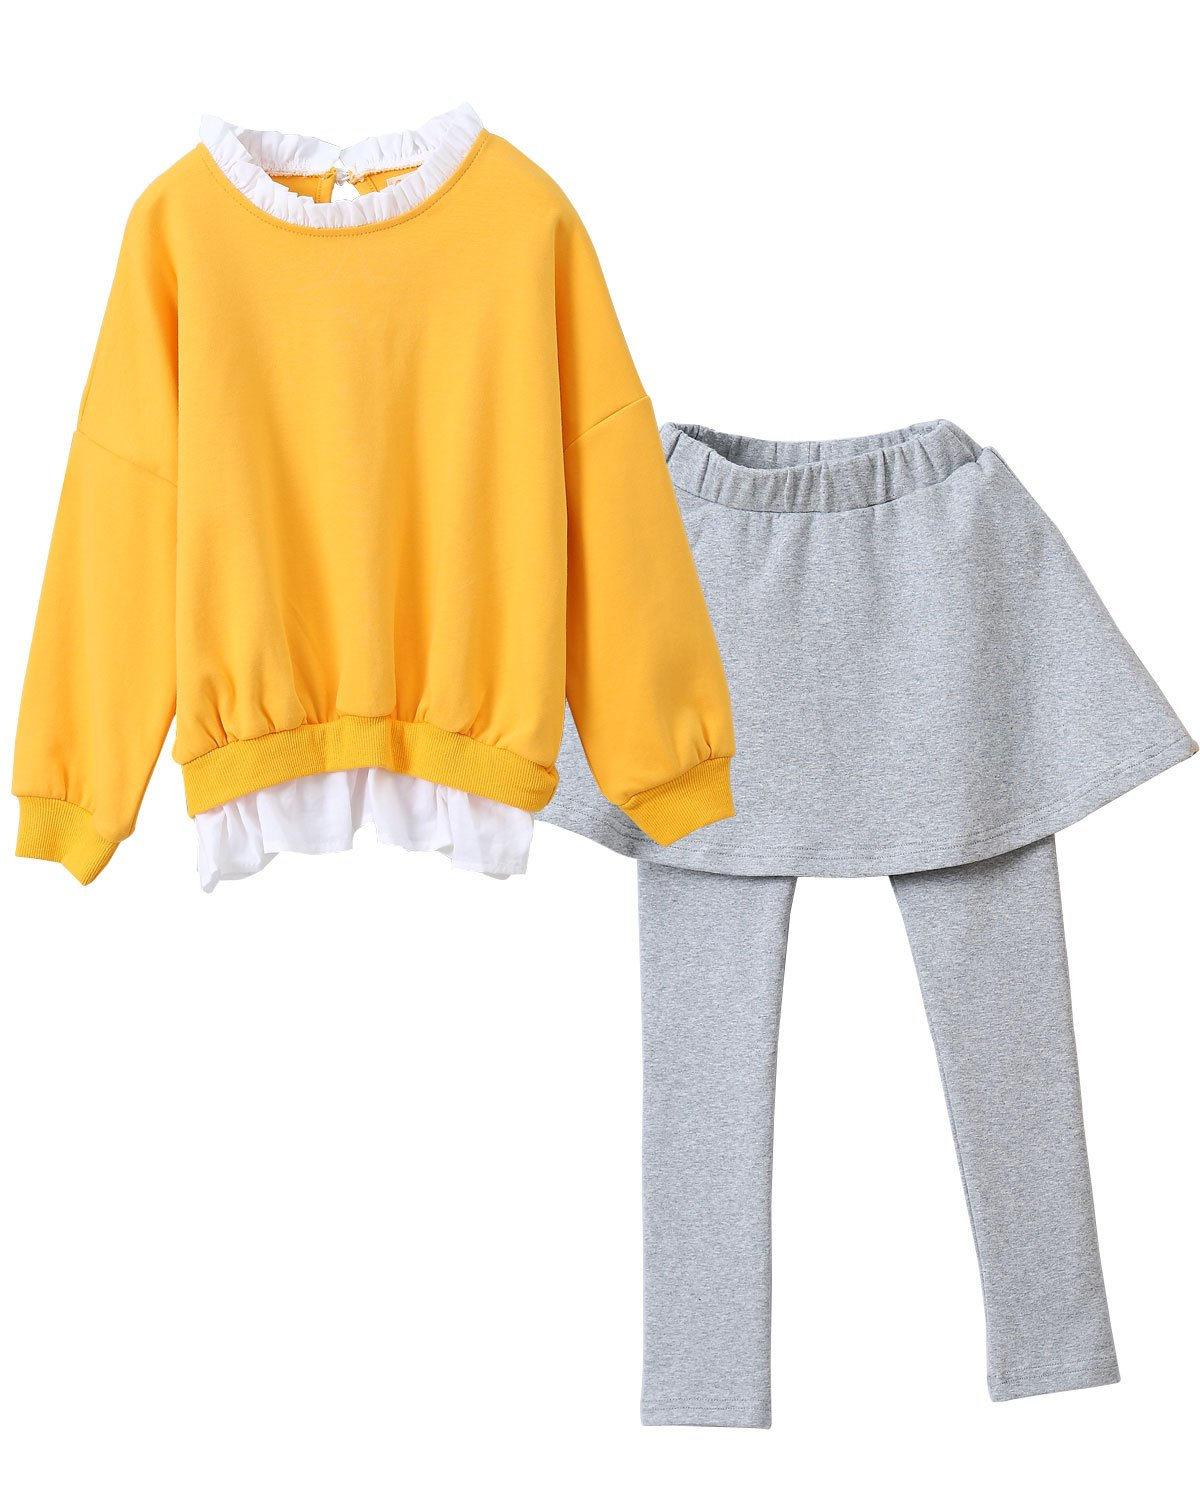 M RACLE Cute Little Girls' 2 Pieces Long Sleeve Top Pants Leggings Clothes Set Outfit (3-4 Years(100), Yellow Gray)